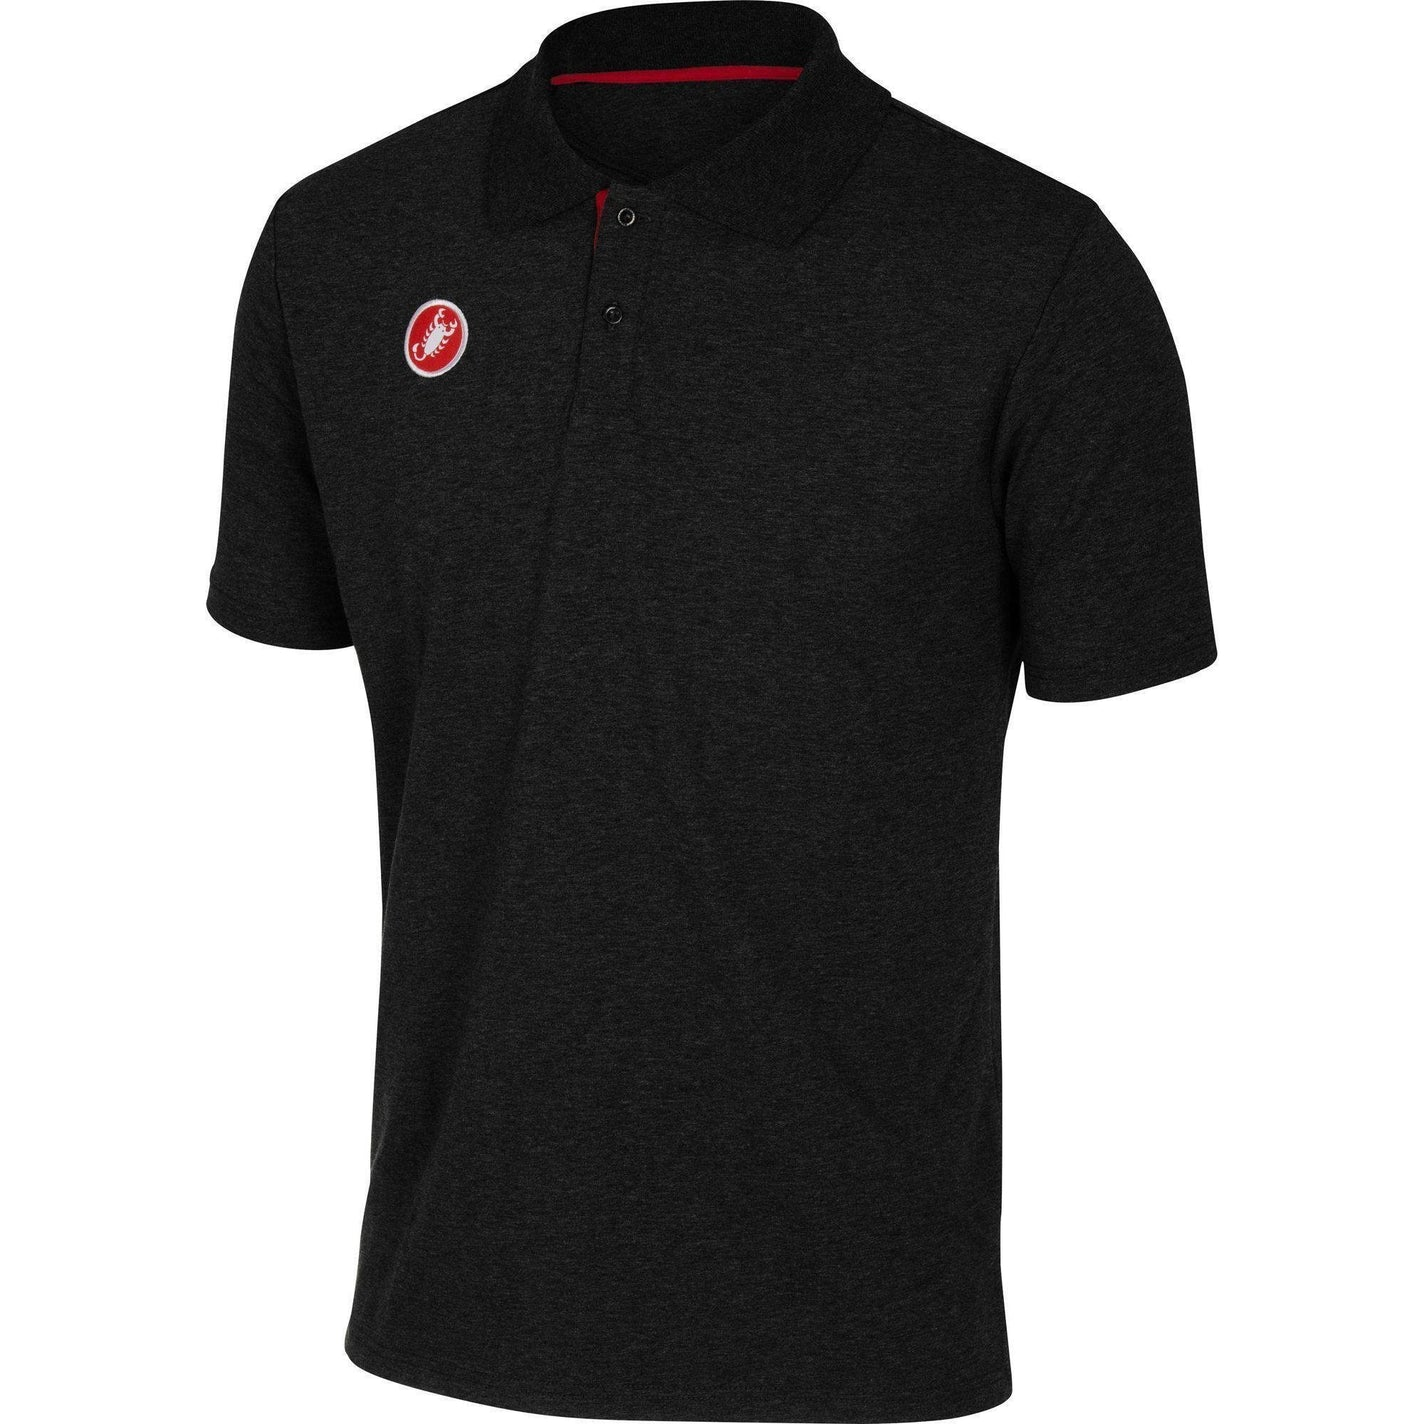 Castelli-Castelli Race Day Polo Shirt-Black-S-CS130960102-saddleback-elite-performance-cycling